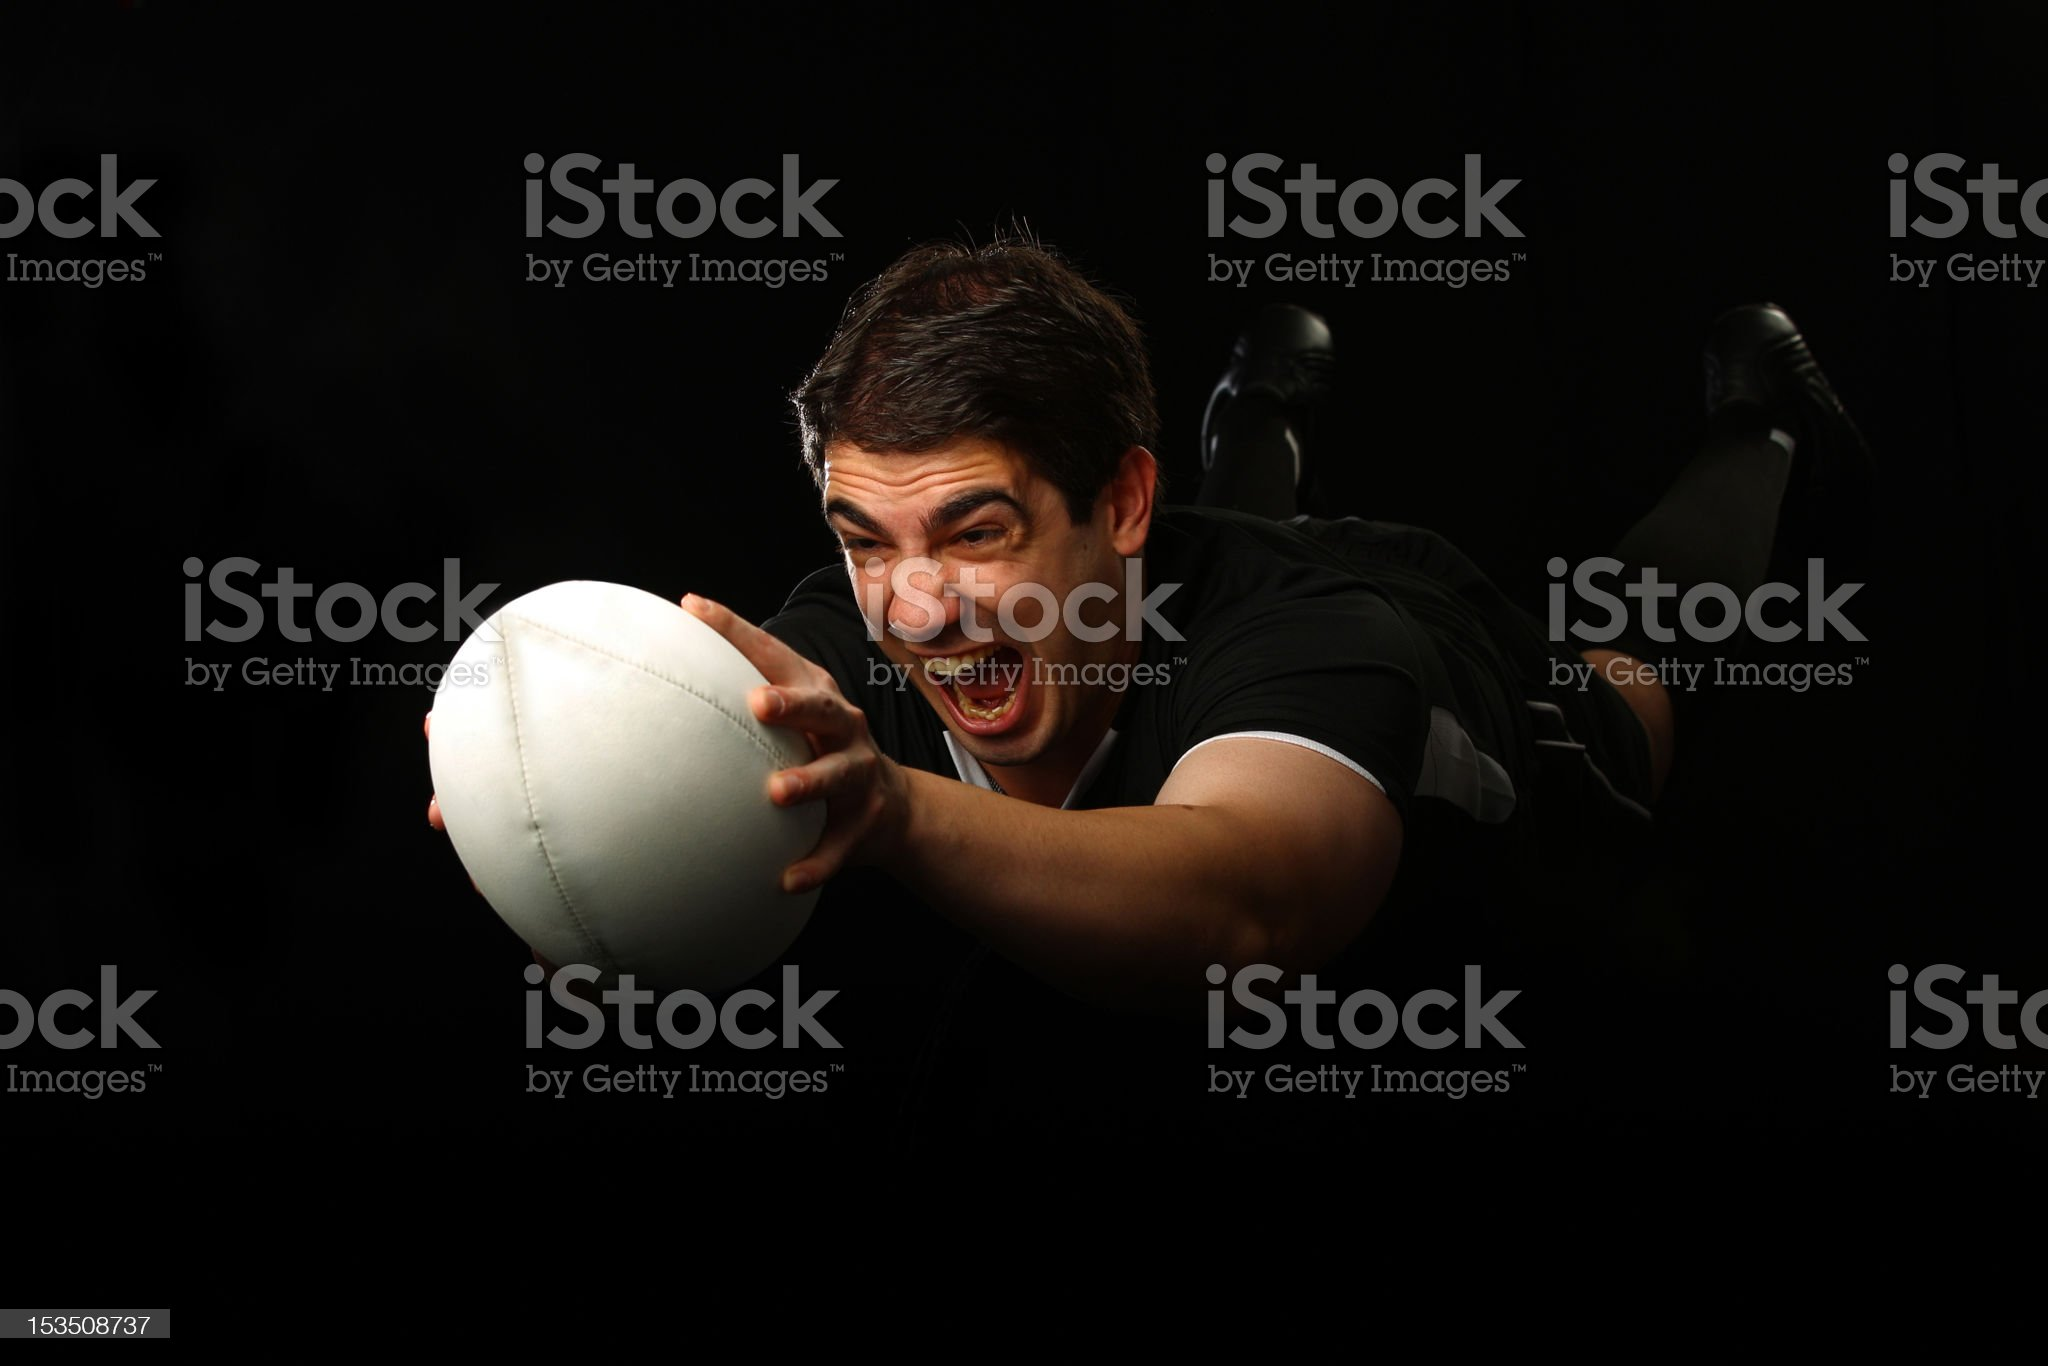 Rugby Player Dives with the Ball royalty-free stock photo